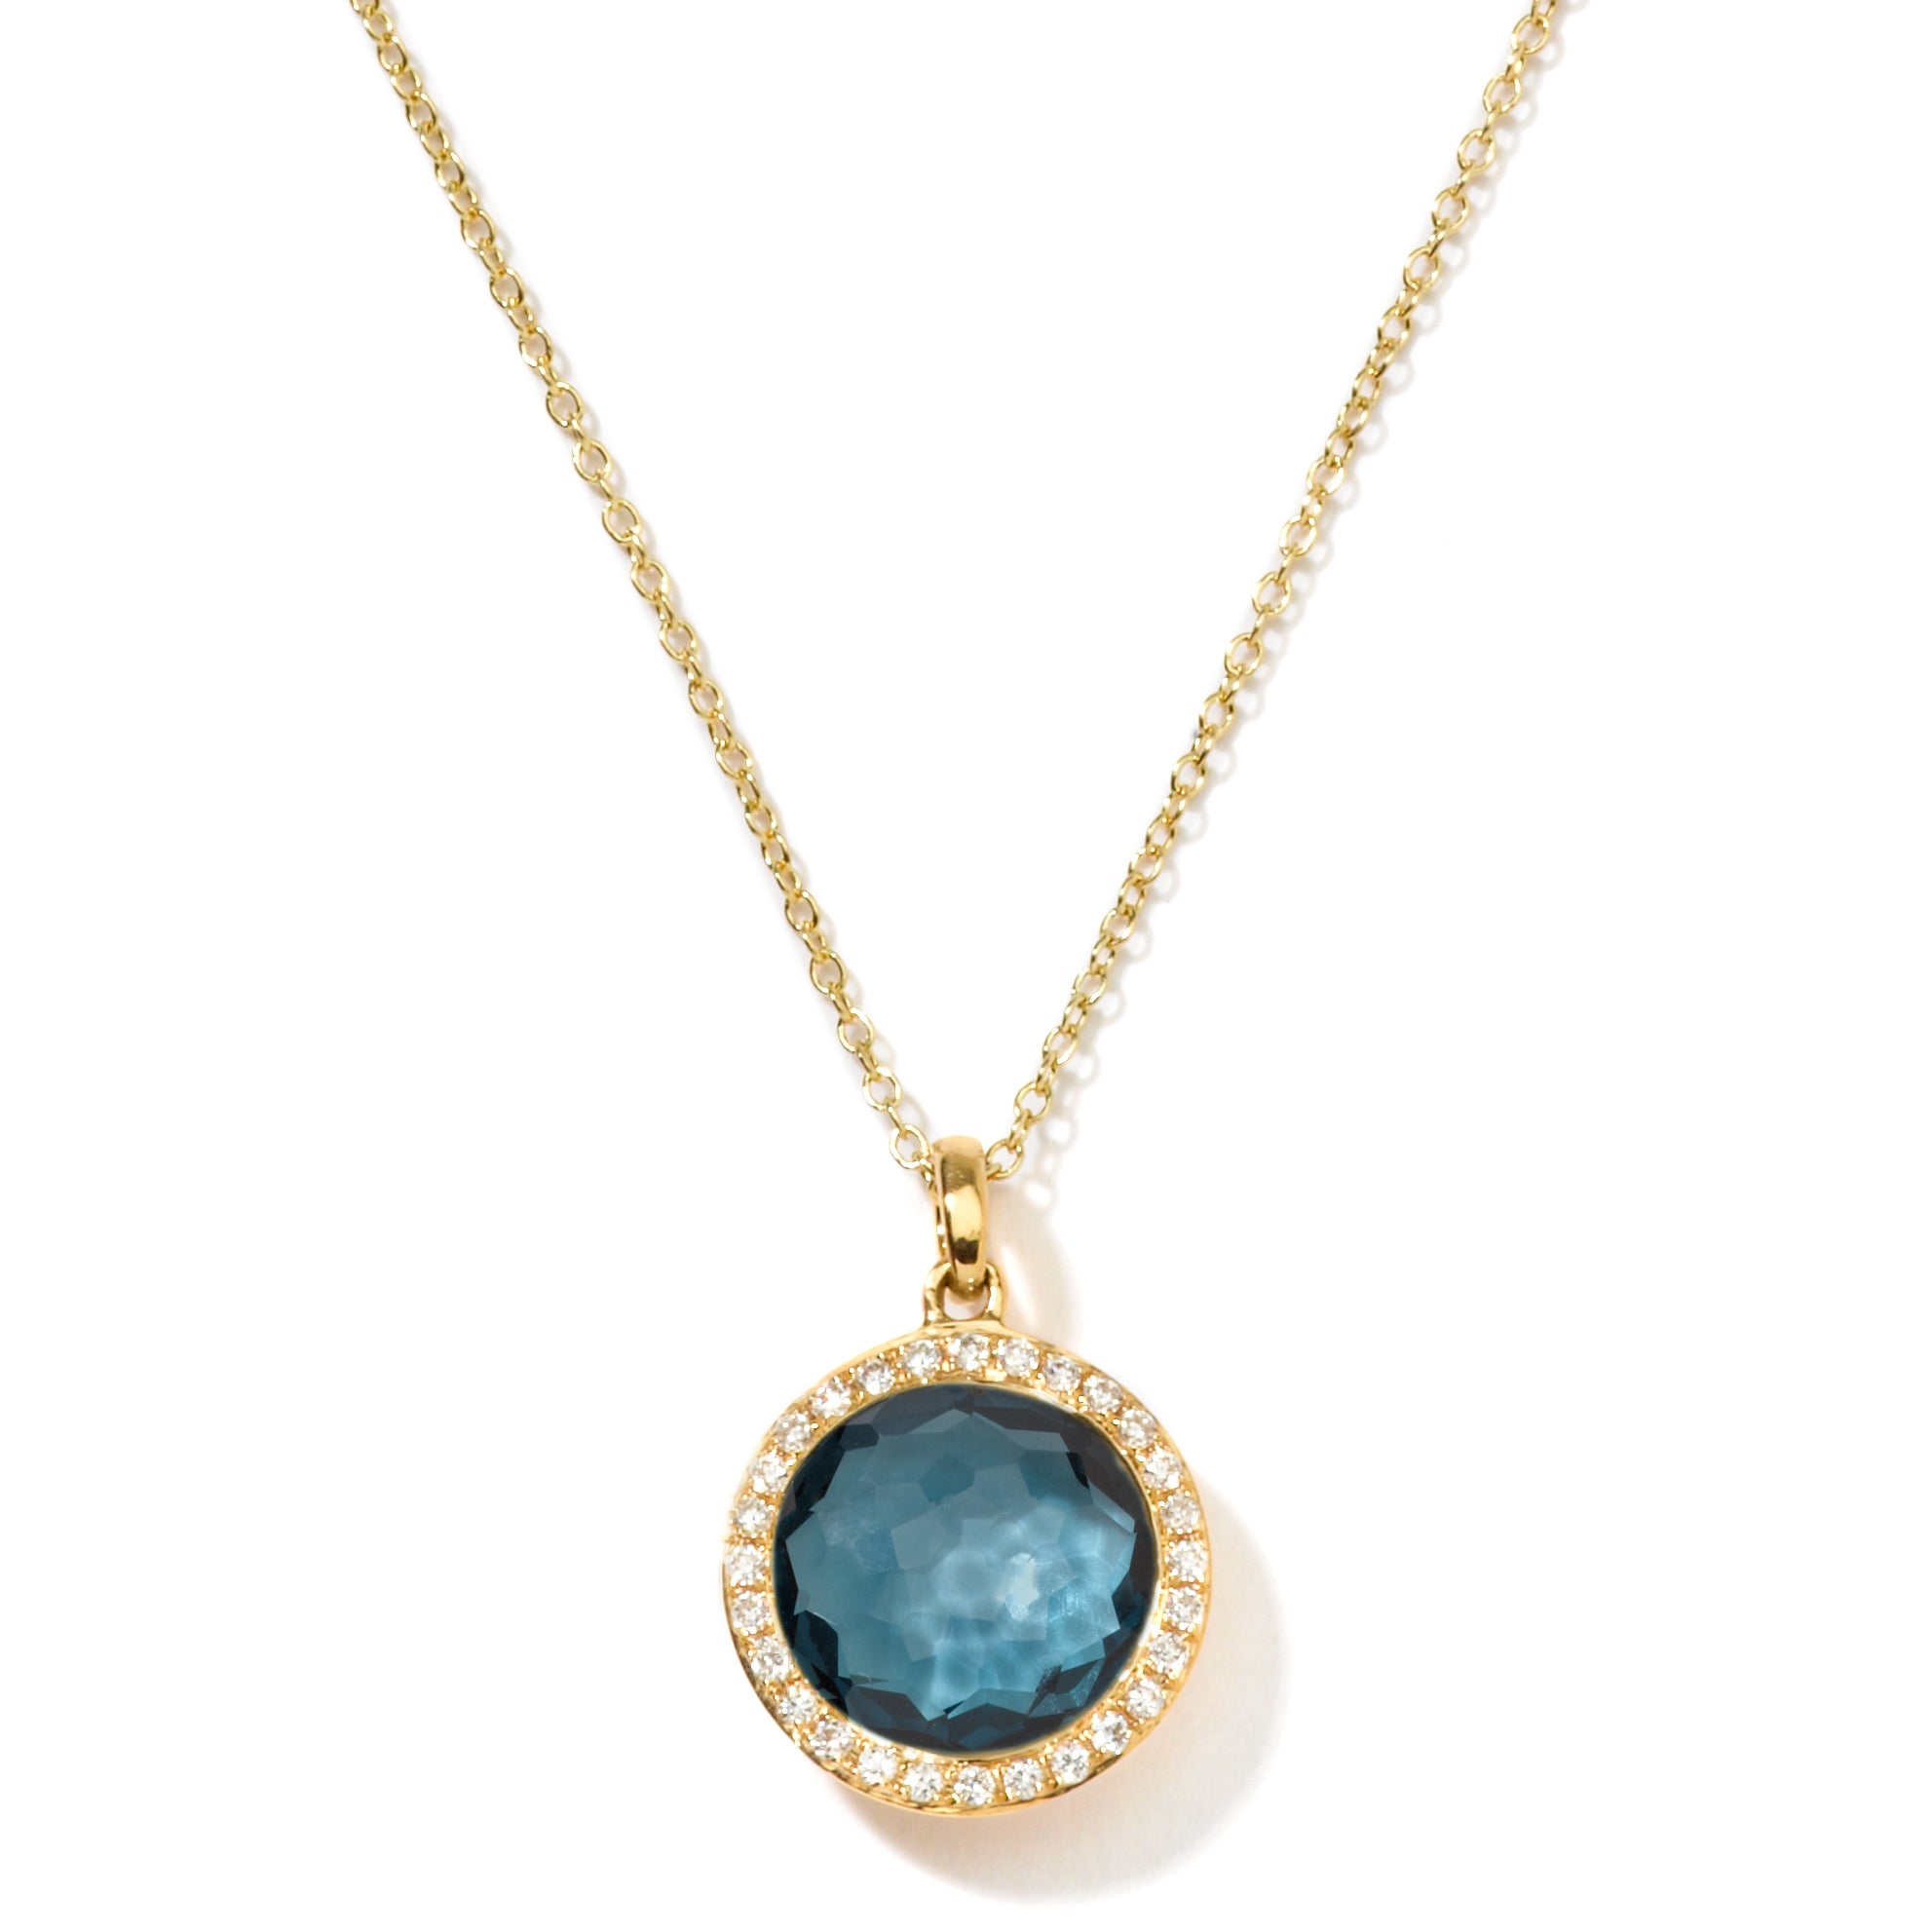 Mini Blue Topaz and Pave Diamond Pendant